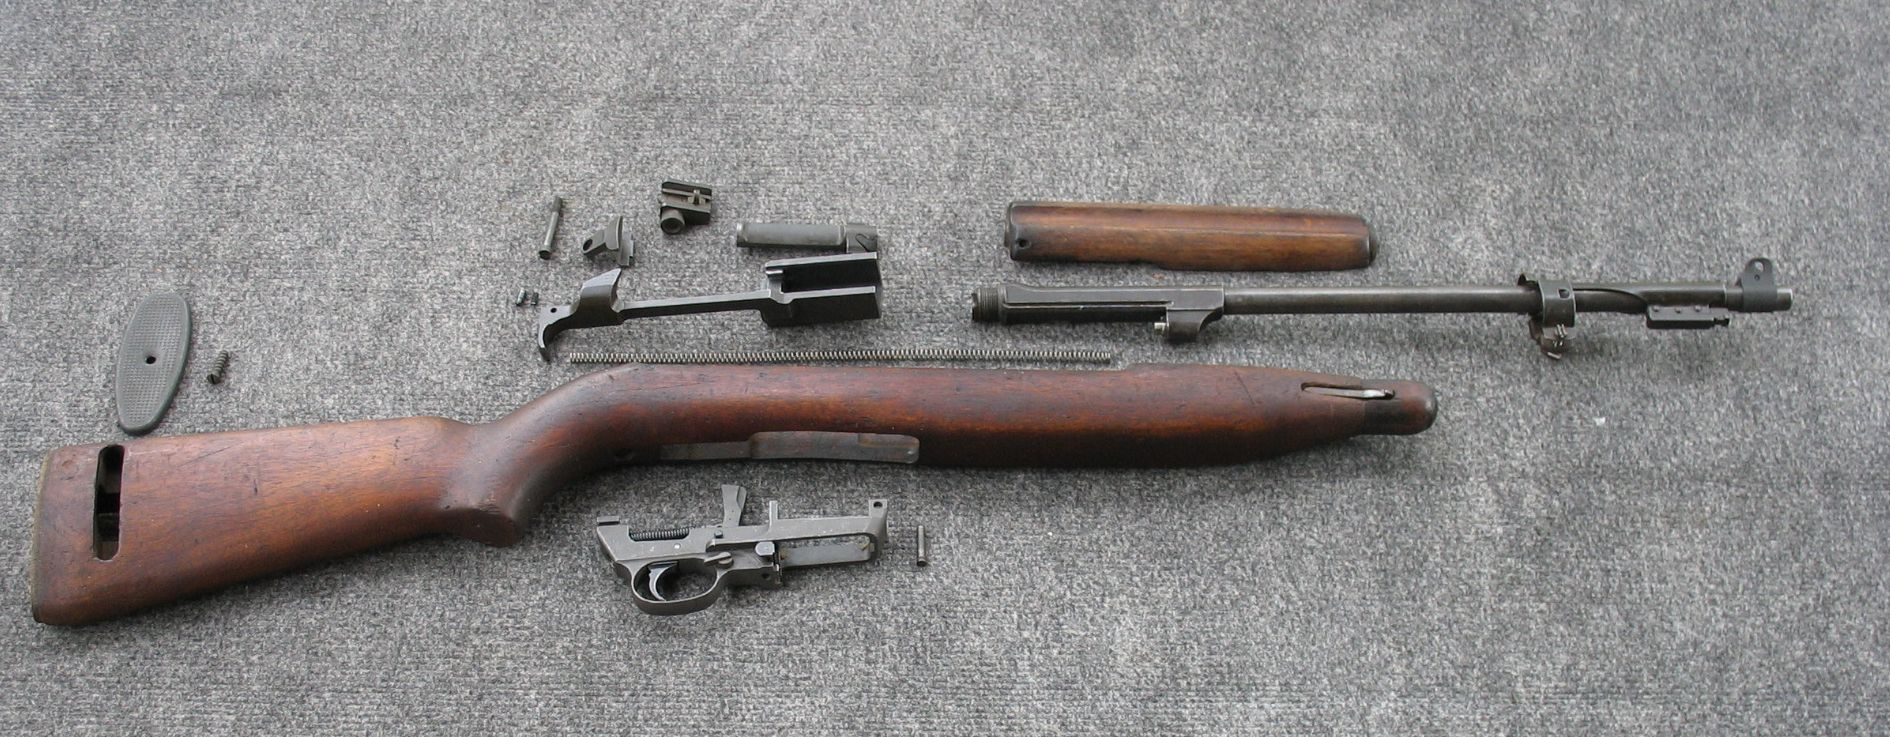 Photo 6 of 28, Inland M1 Carbine from CMP on